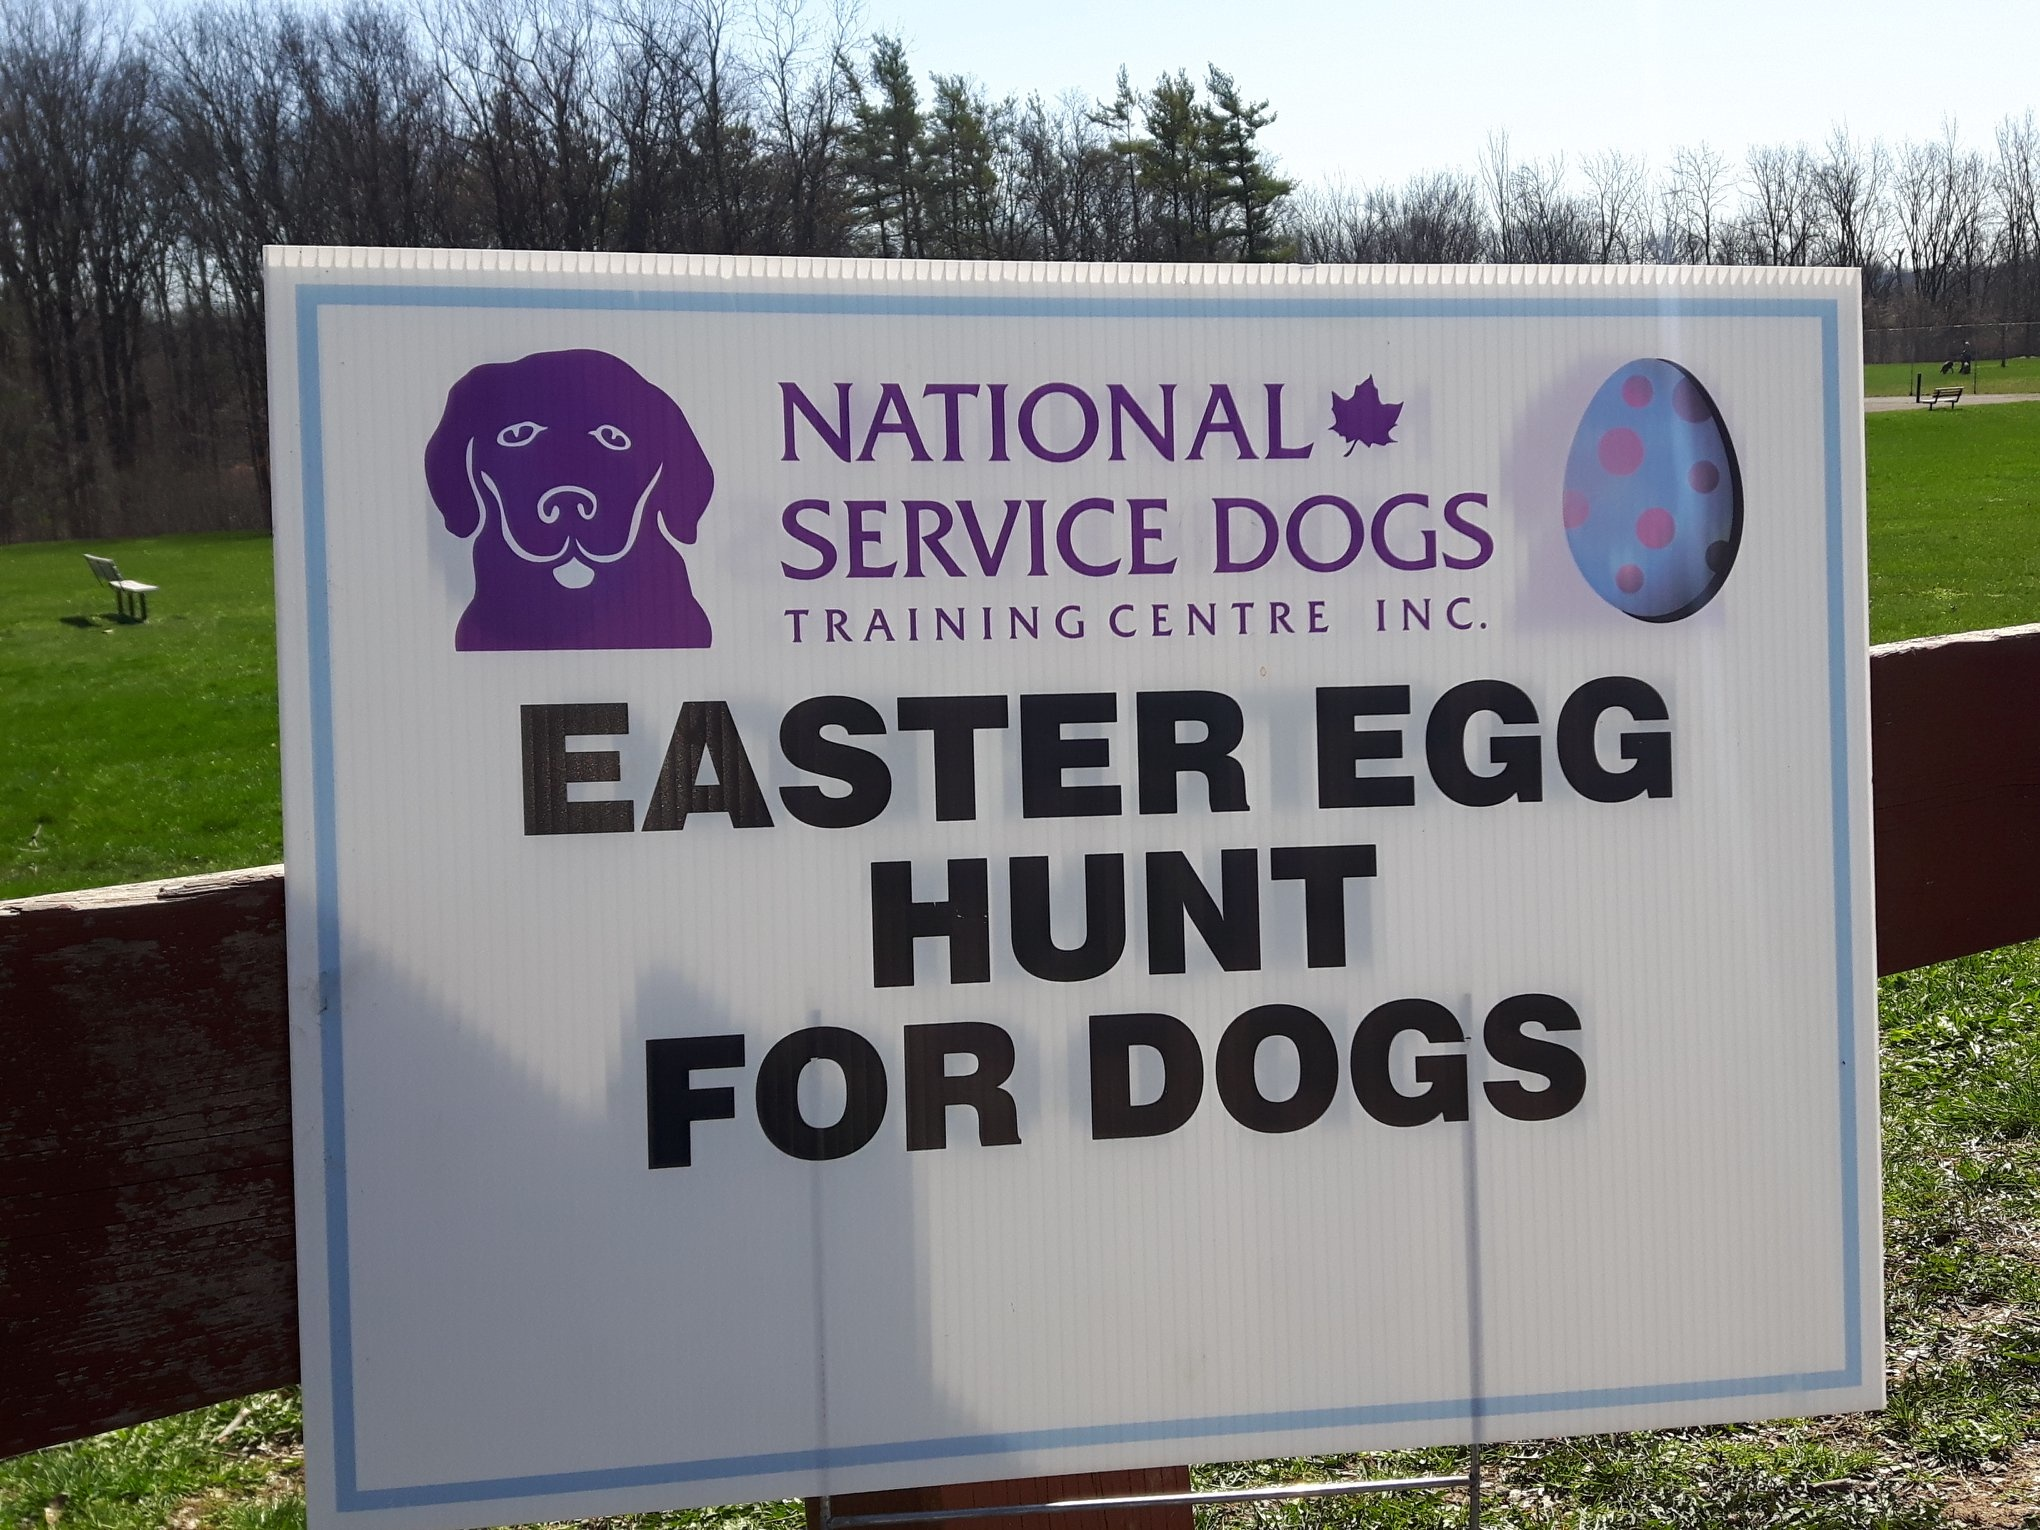 Don't miss the Easter Egg Hunt for Dogs!